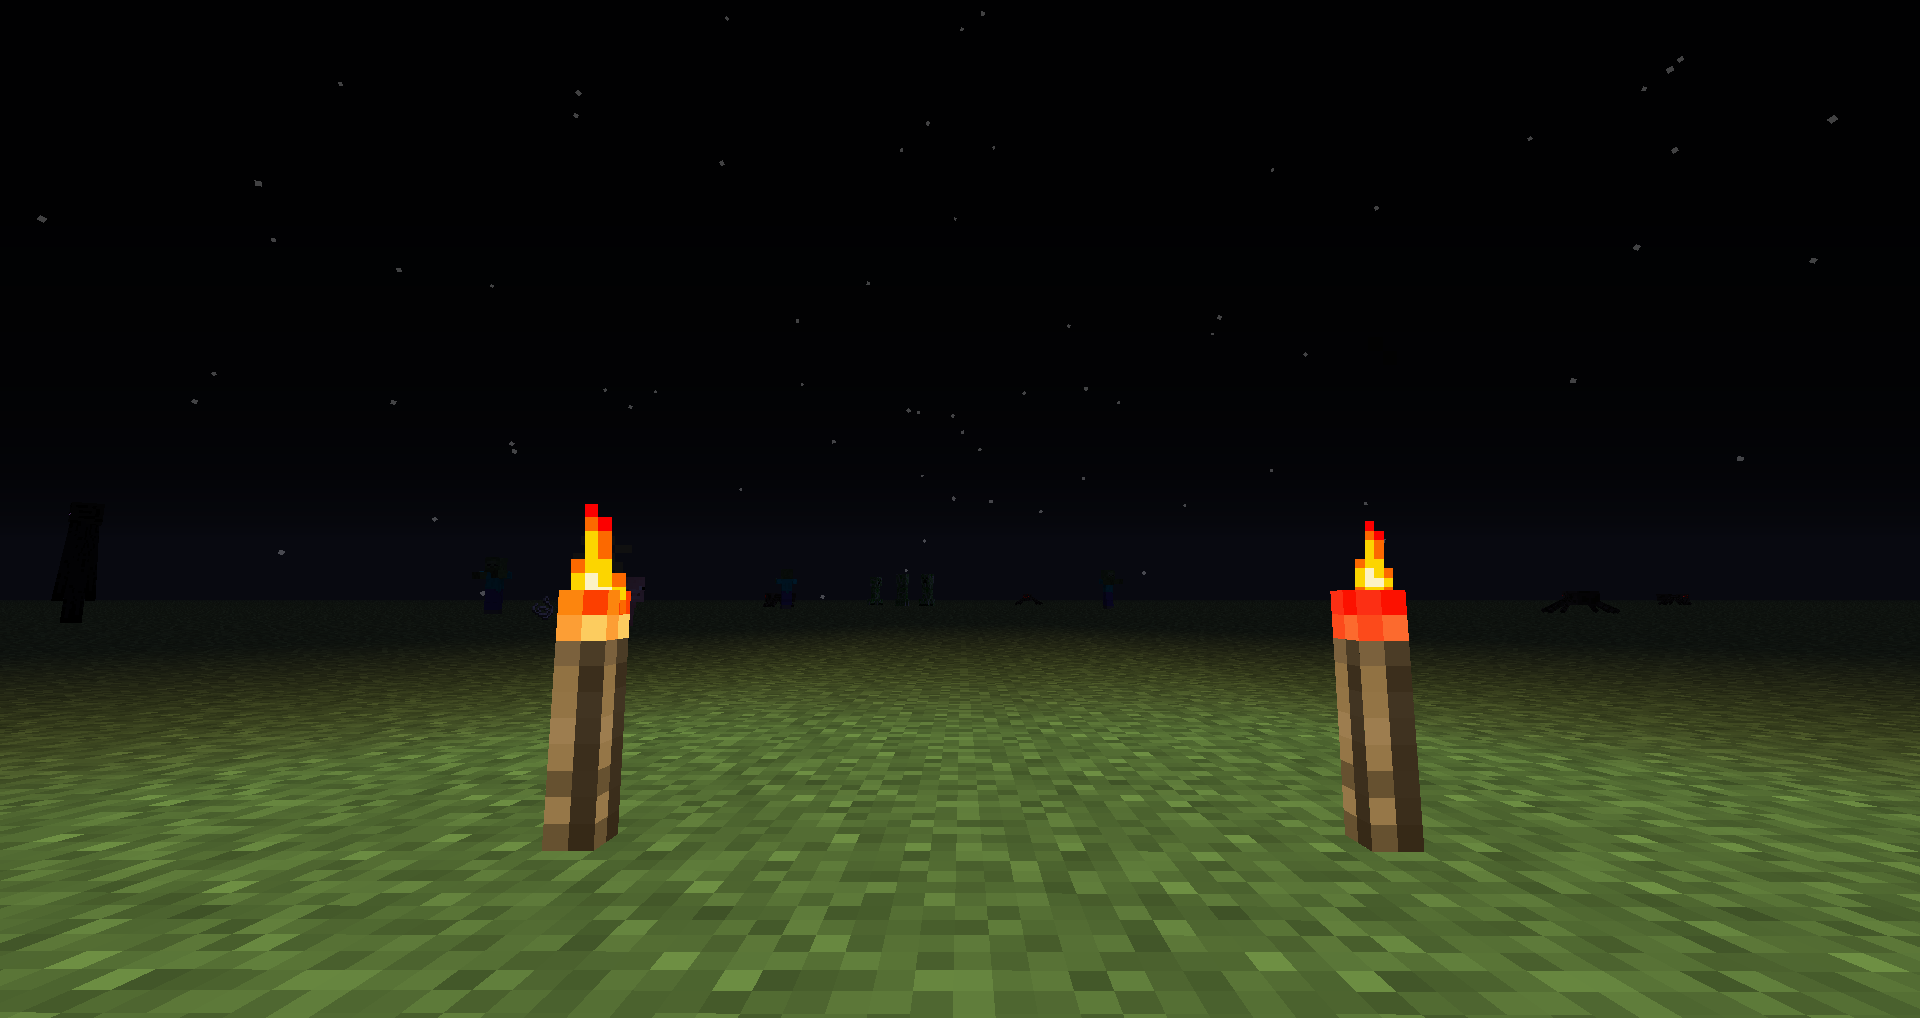 http://minecraft-forum.net/wp-content/uploads/2013/05/45a16__Suntorch-Mod-1.png